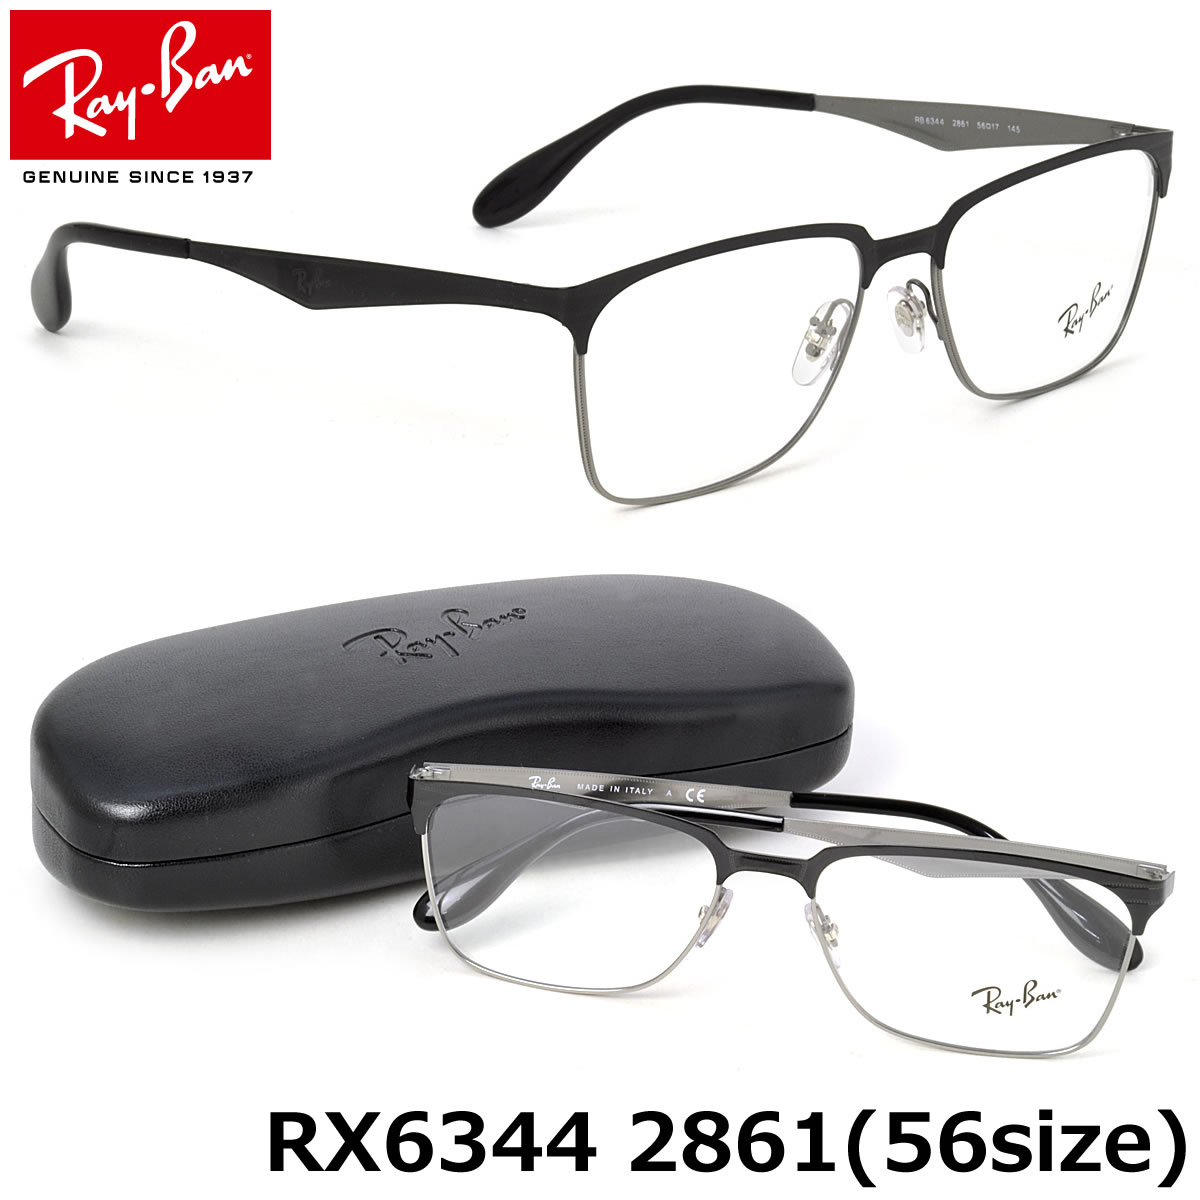 5d9ee34ede4 Optical Shop Thats  (Ray-Ban) glasses frames RX6344